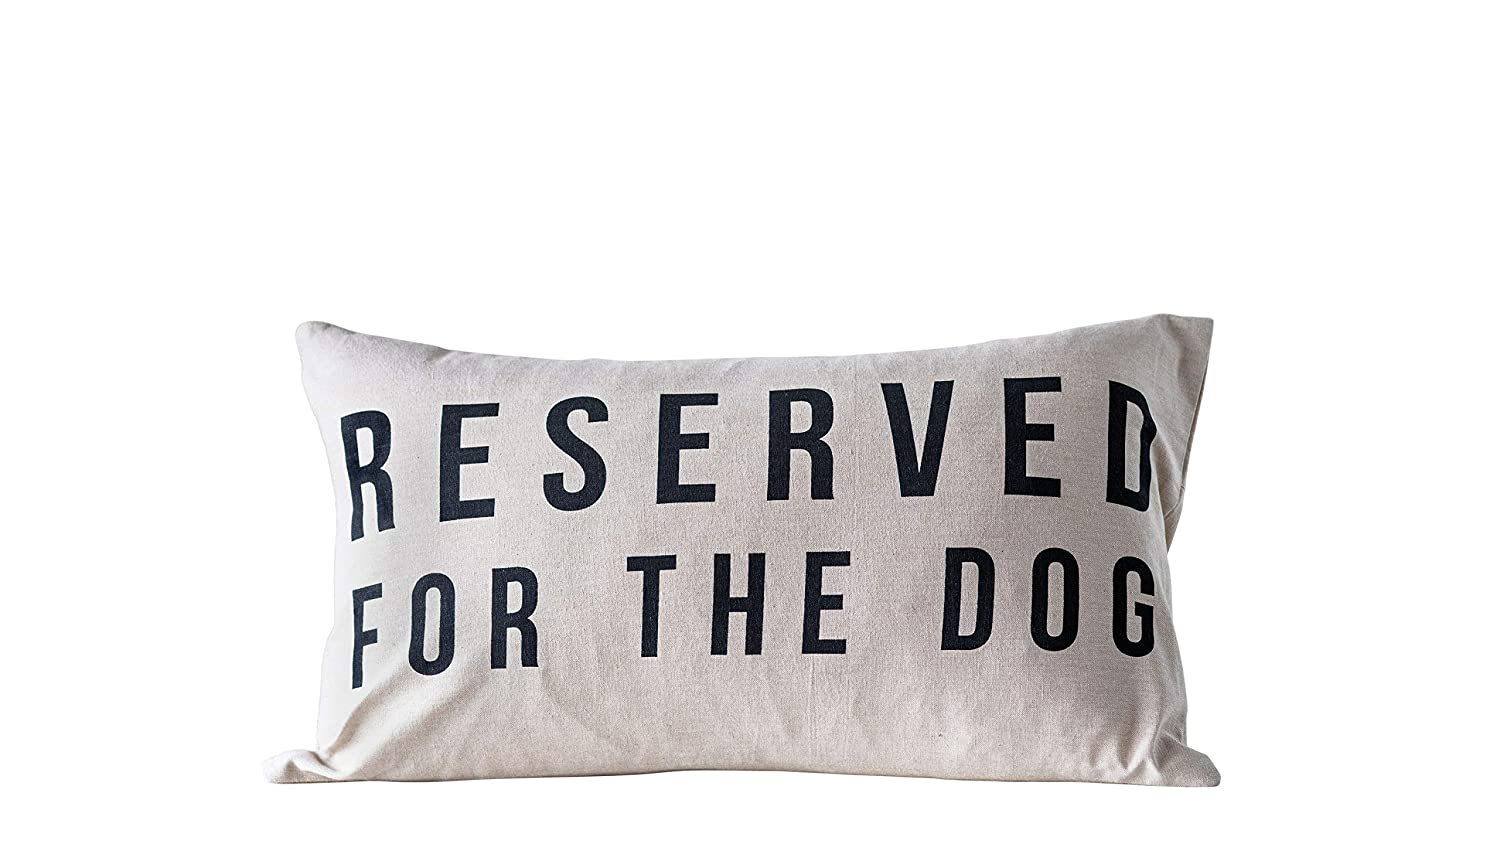 Reserved for the Dog - a pillow to add whimsy to your sofa, bed, porch, or chair at home.